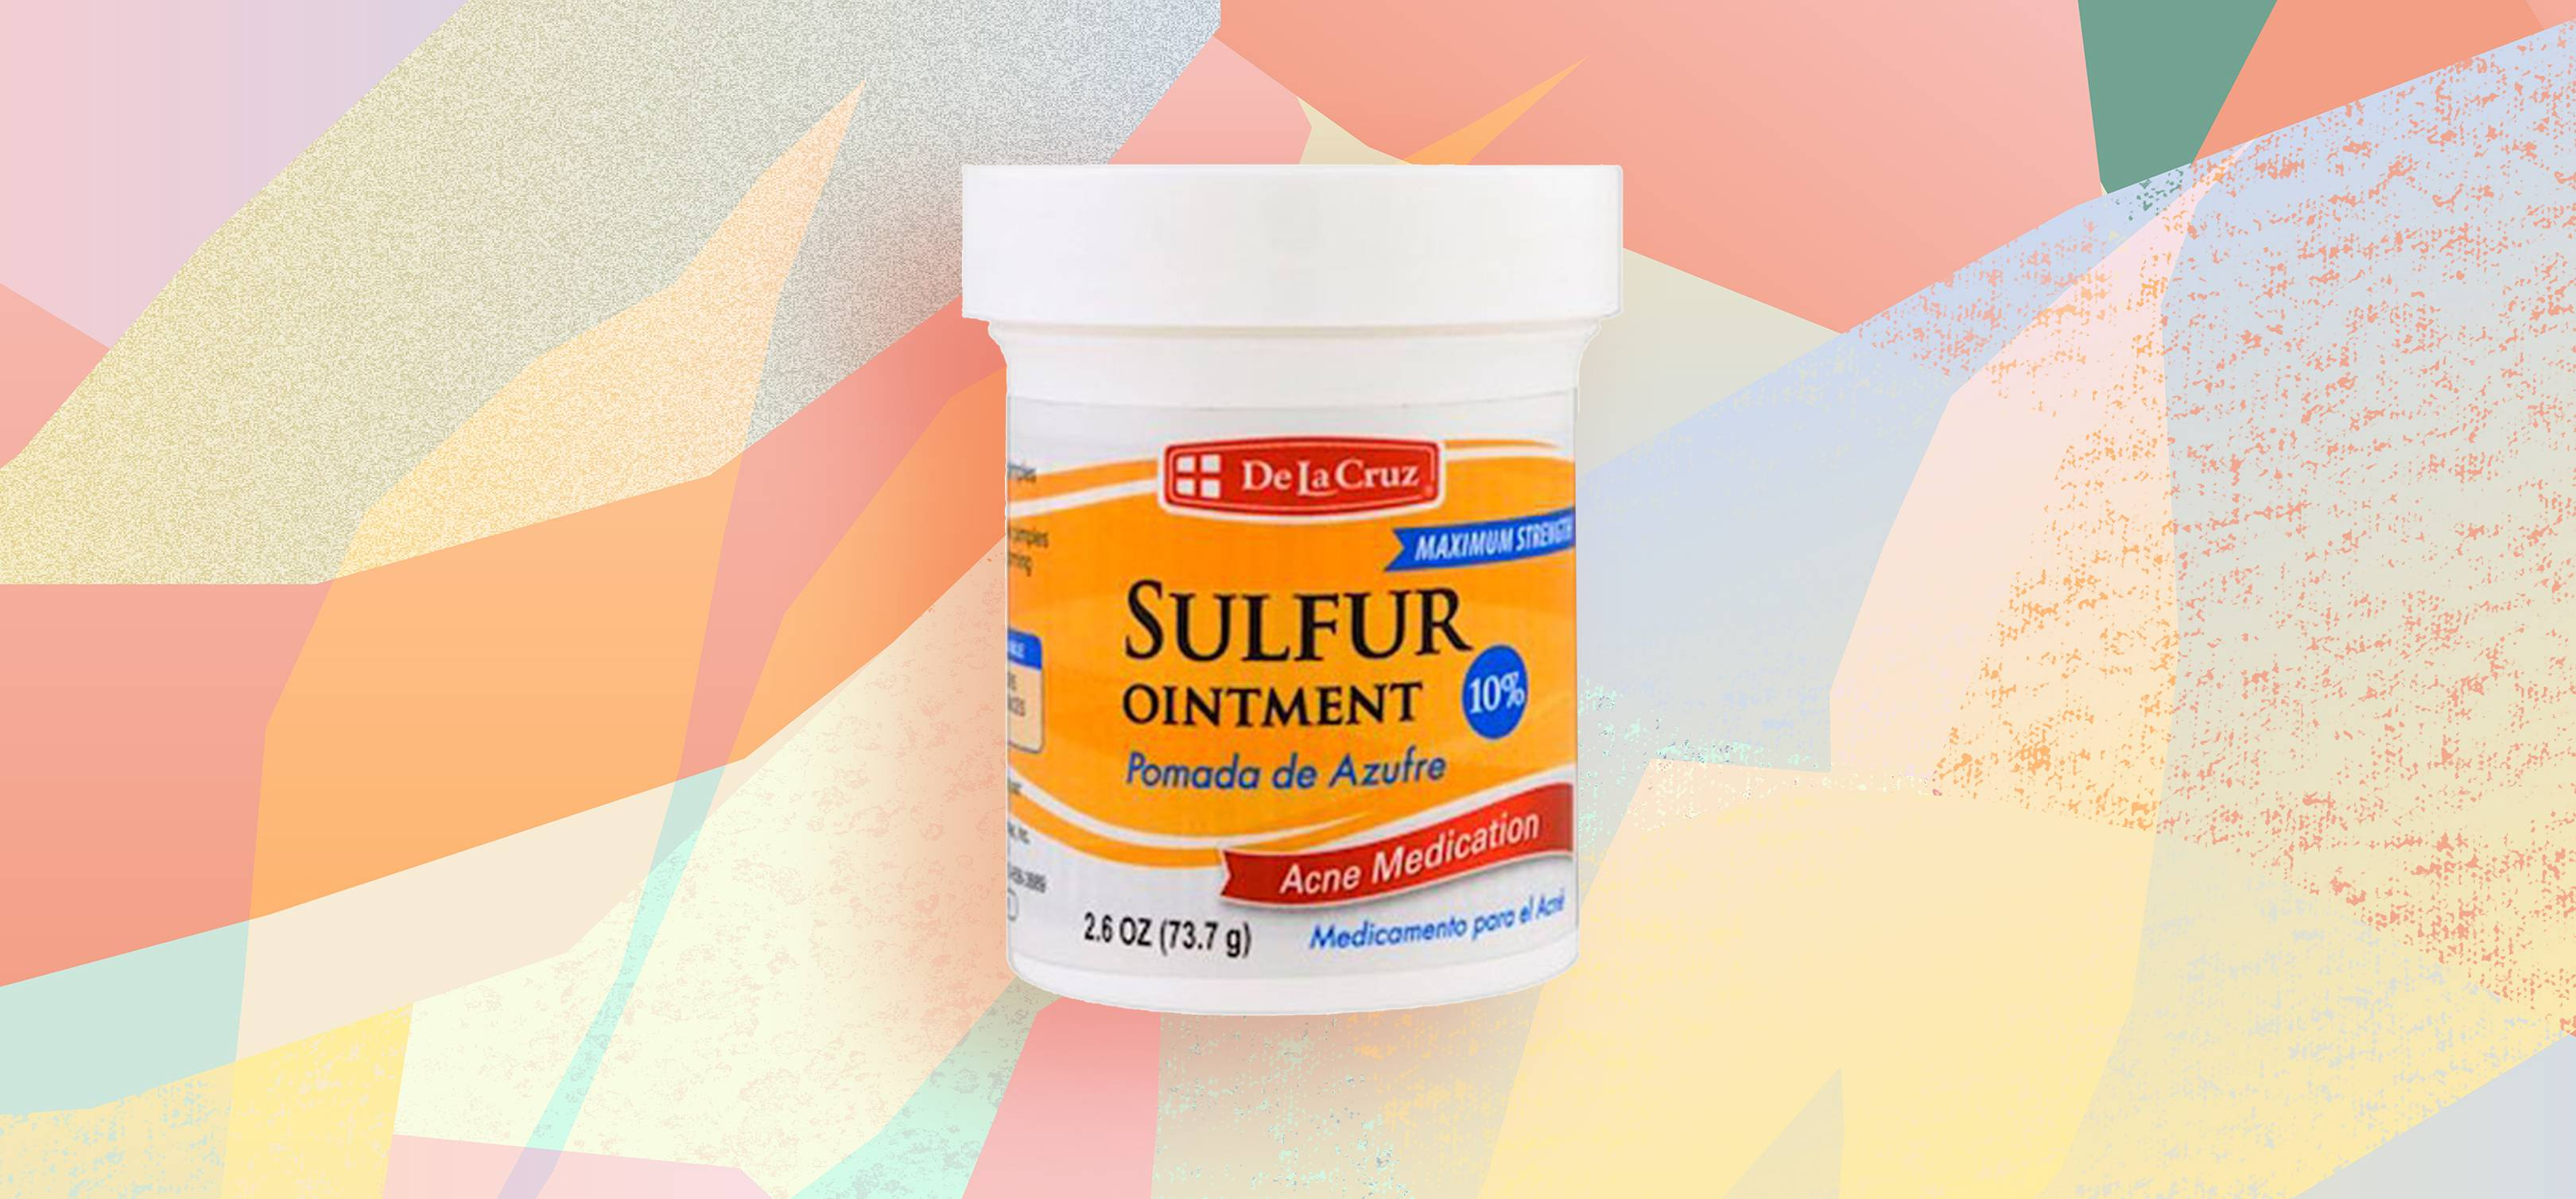 Sulfur Ointment: Is This The Cure For Cystic Acne? | Glamour UK